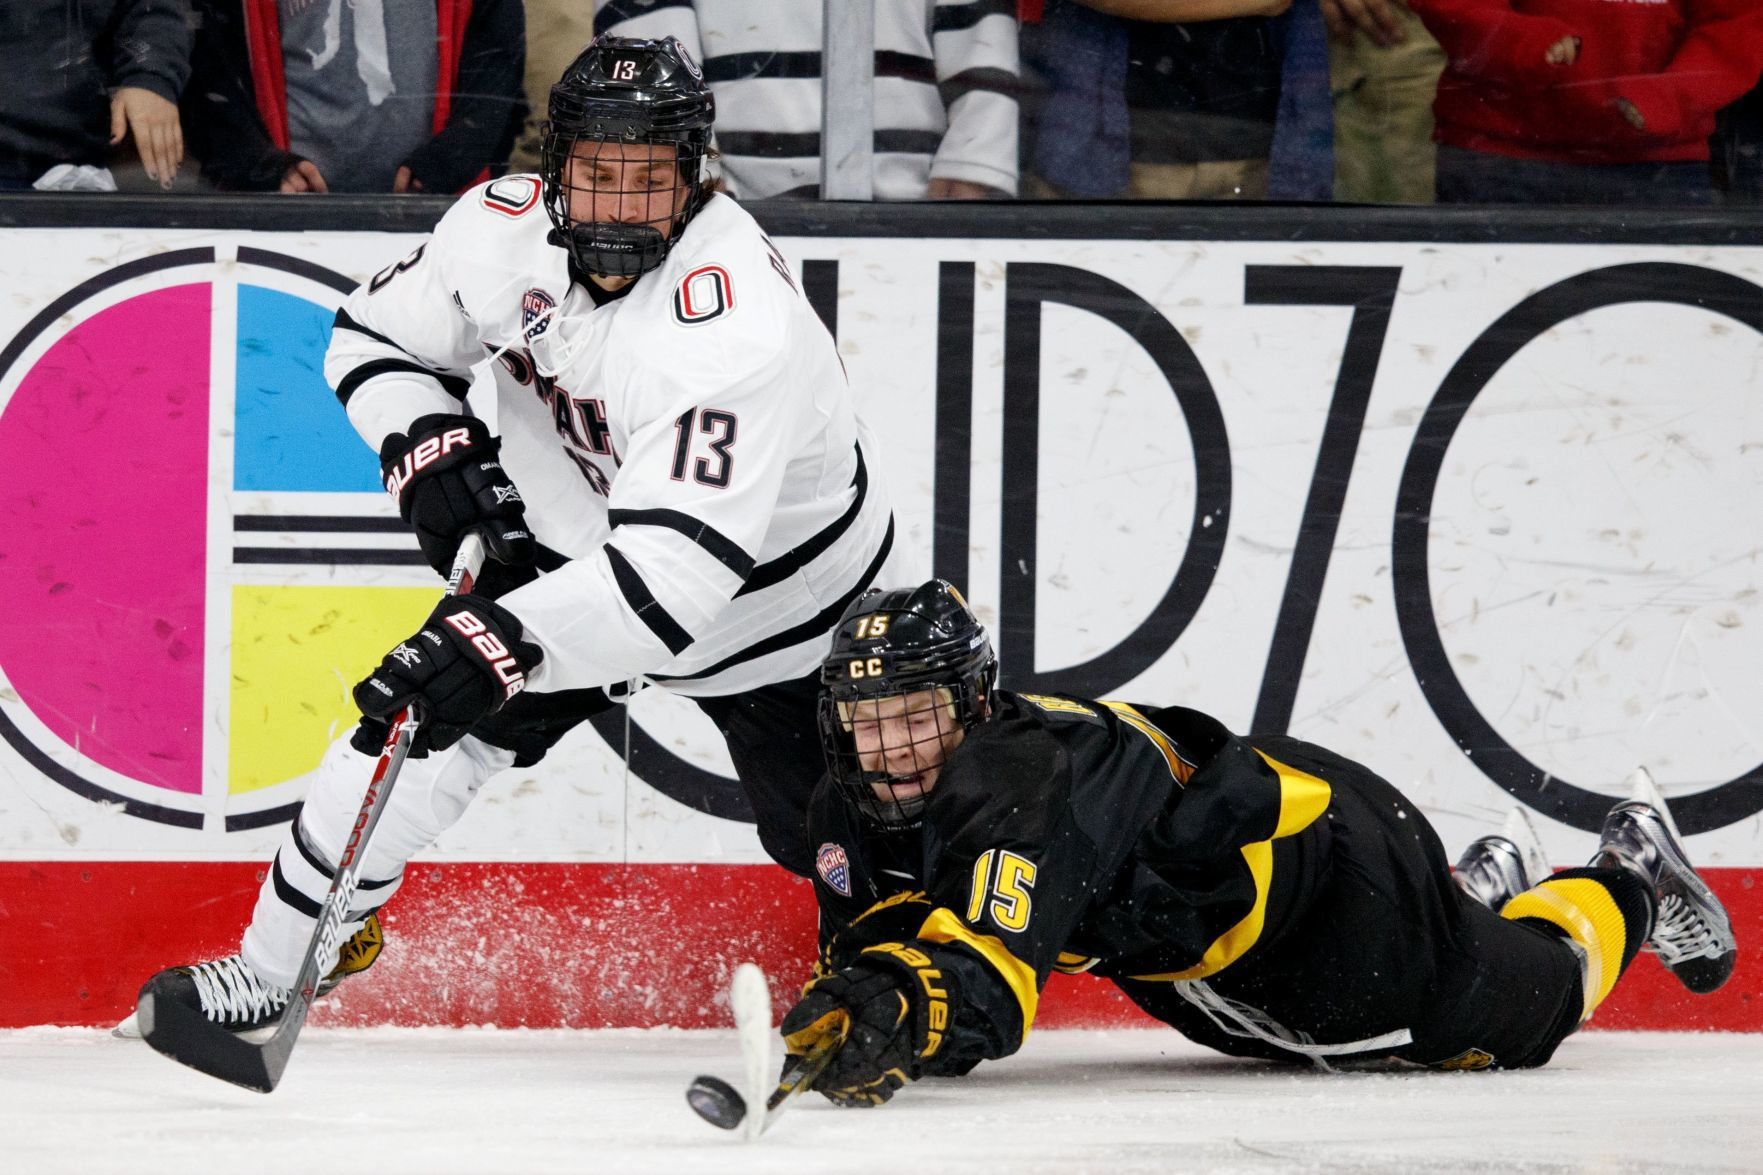 NCHC: NCAA Tournament Spots At Stake For No. 14 UNO Hockey At No. 7 Minnesota Duluth